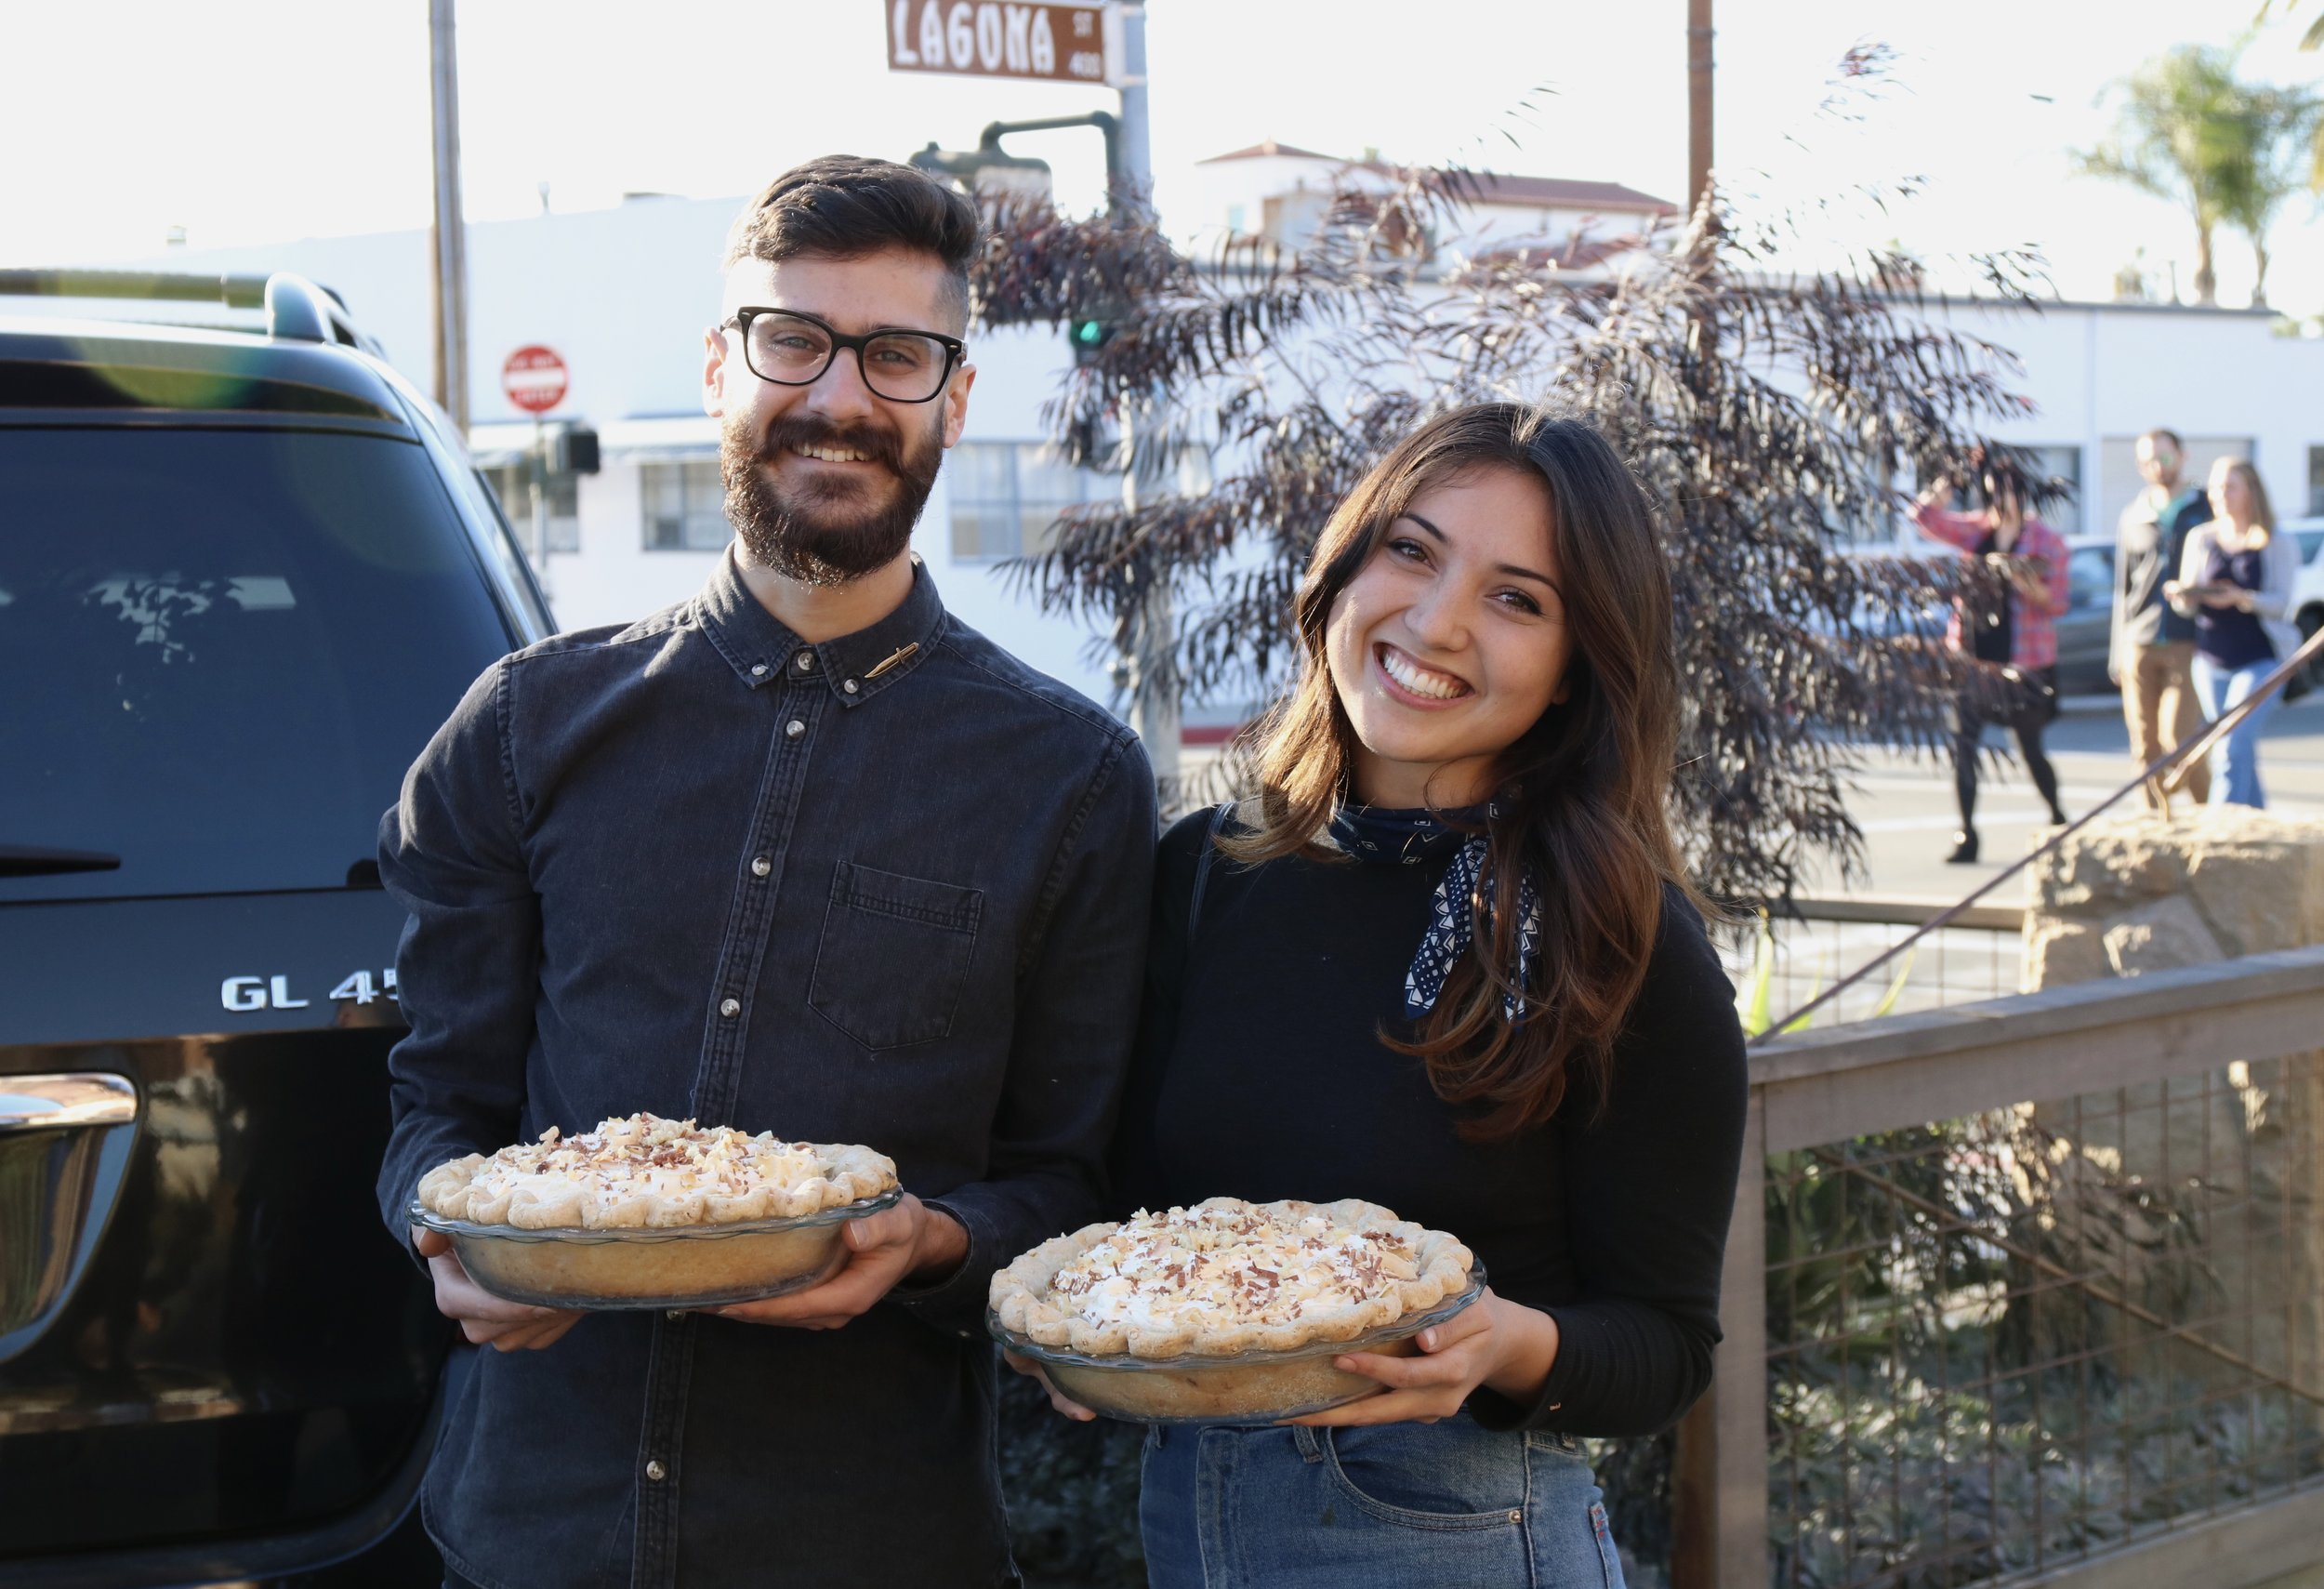 The cutest contestants arriving to the event.  Every contestant has to bake two identical pies.